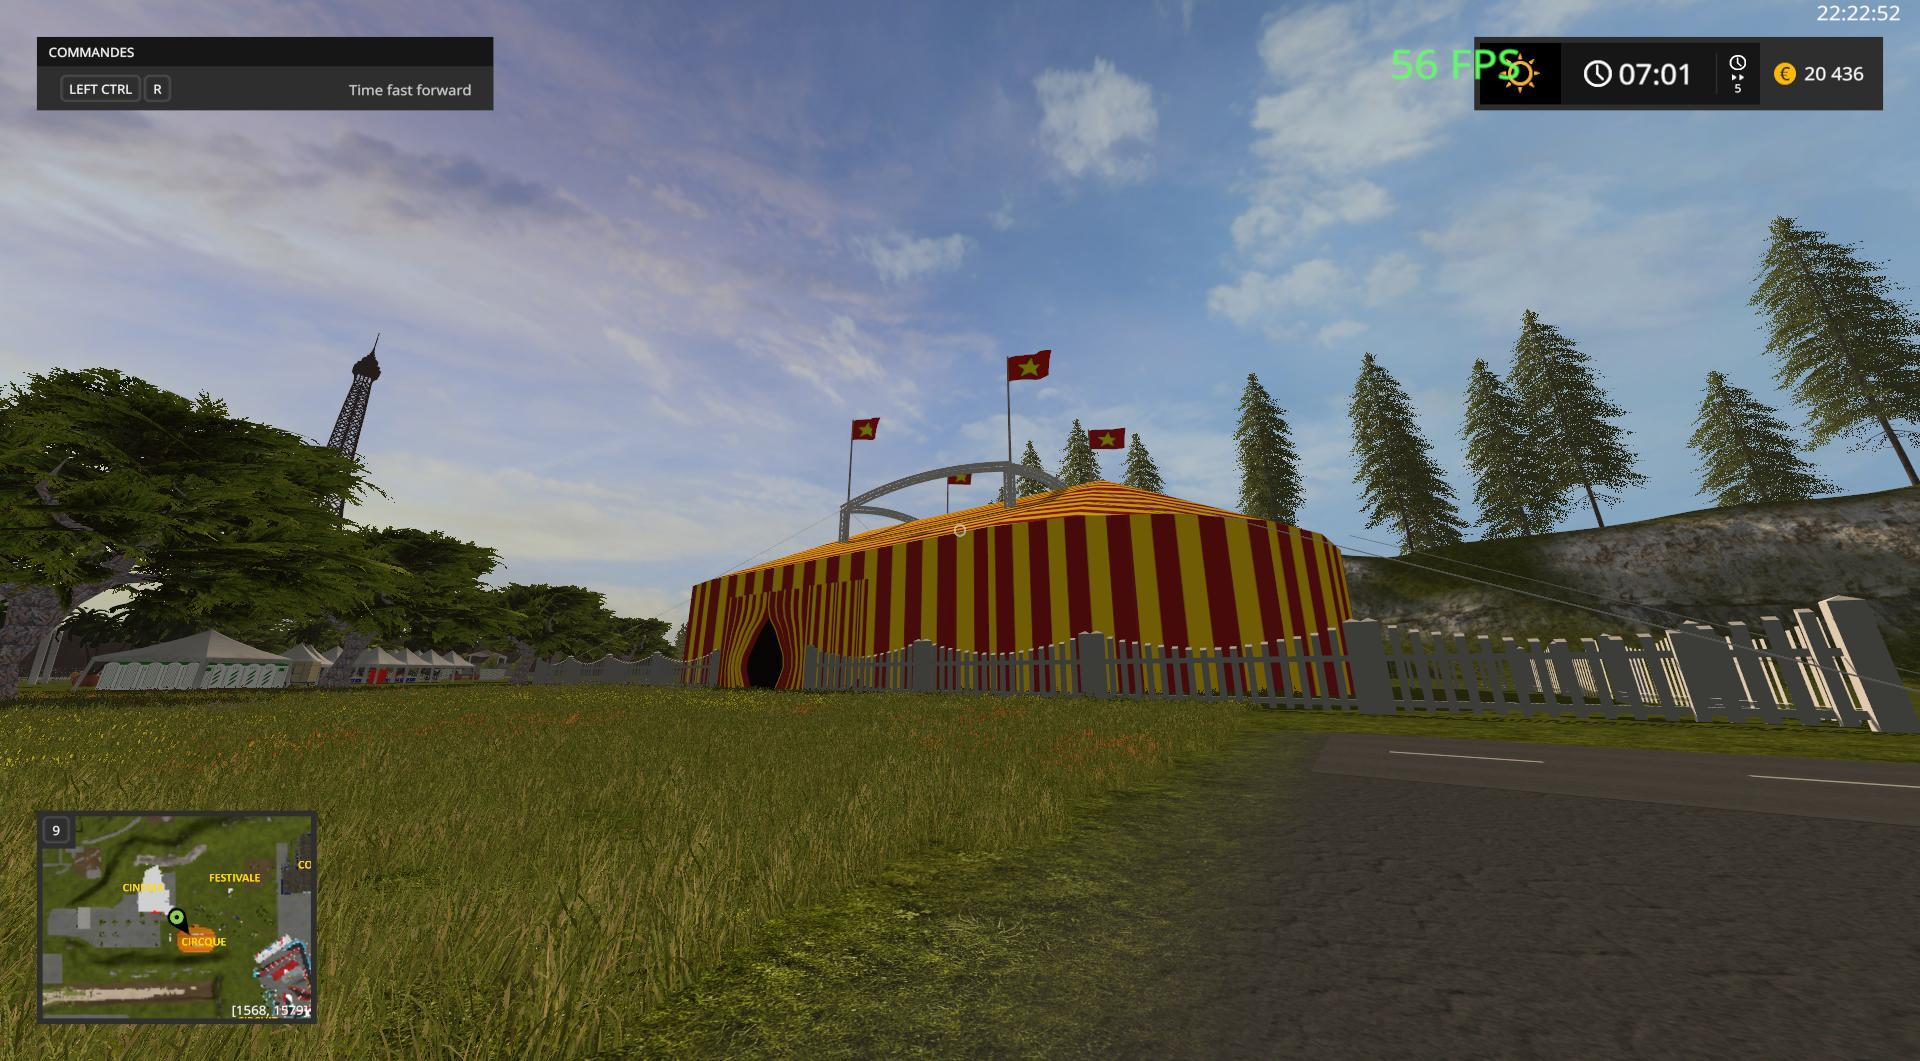 FS17 Fmfs map v3.1.0 - Farming simulator 2019 / 2017 / 2015 Mod Fs Map Circus on western town map, colonial house map, st thomas map, valley of kings map, princess map, colosseum map, new amsterdam map, storybook map, encore map, red map, city limits map, ancient world map, magic map, circuit map, cowboy map, greater vancouver map, ancient persia map, city of new orleans map, unr parking map, usa travel map,